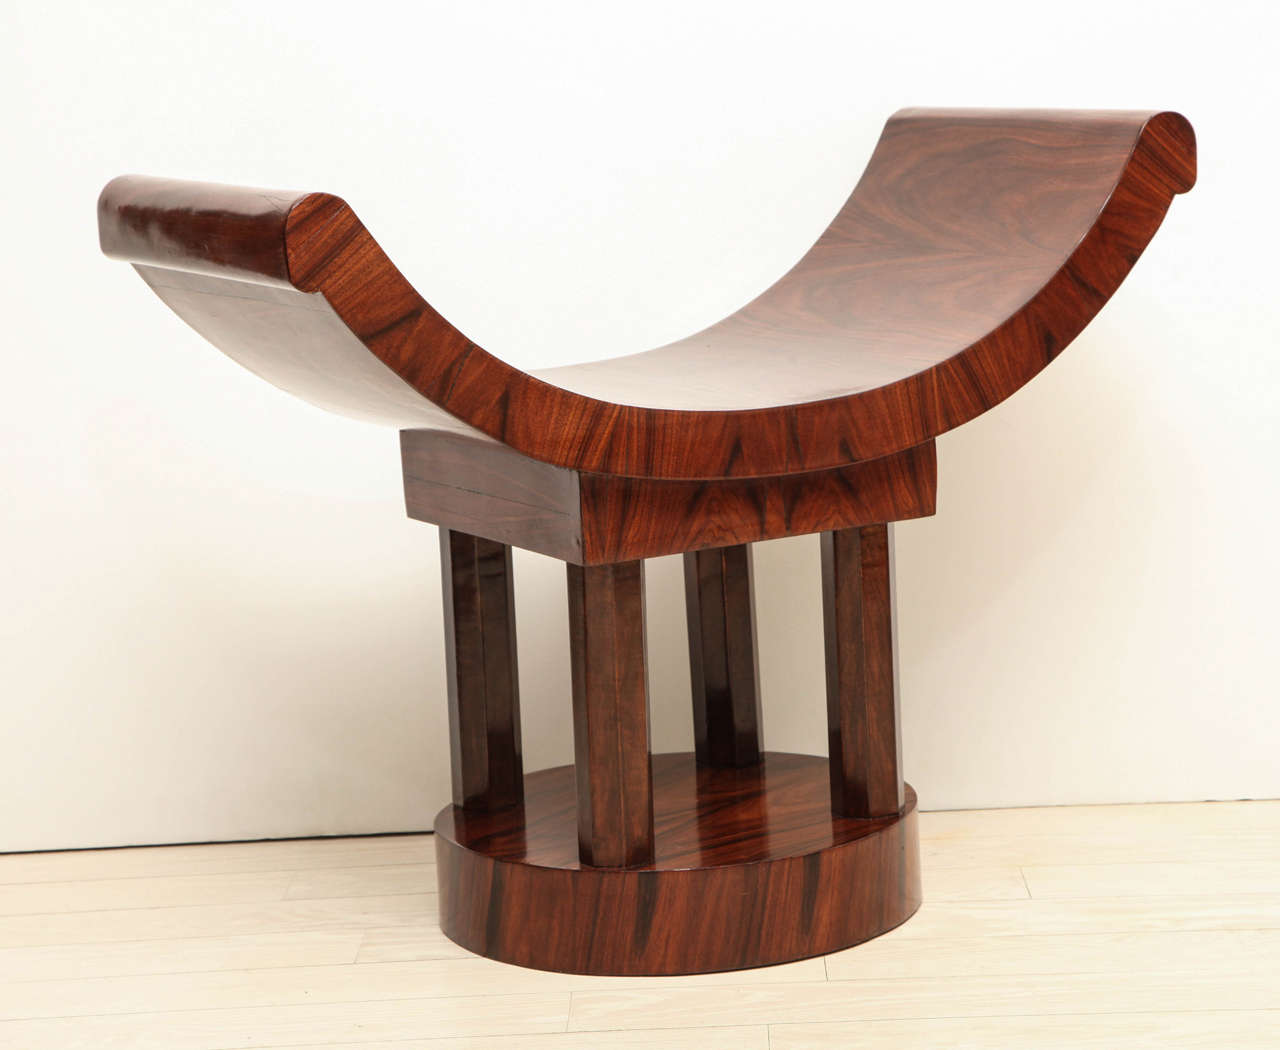 French Art Deco Wood Bench With Curved Seat Circa 1930s